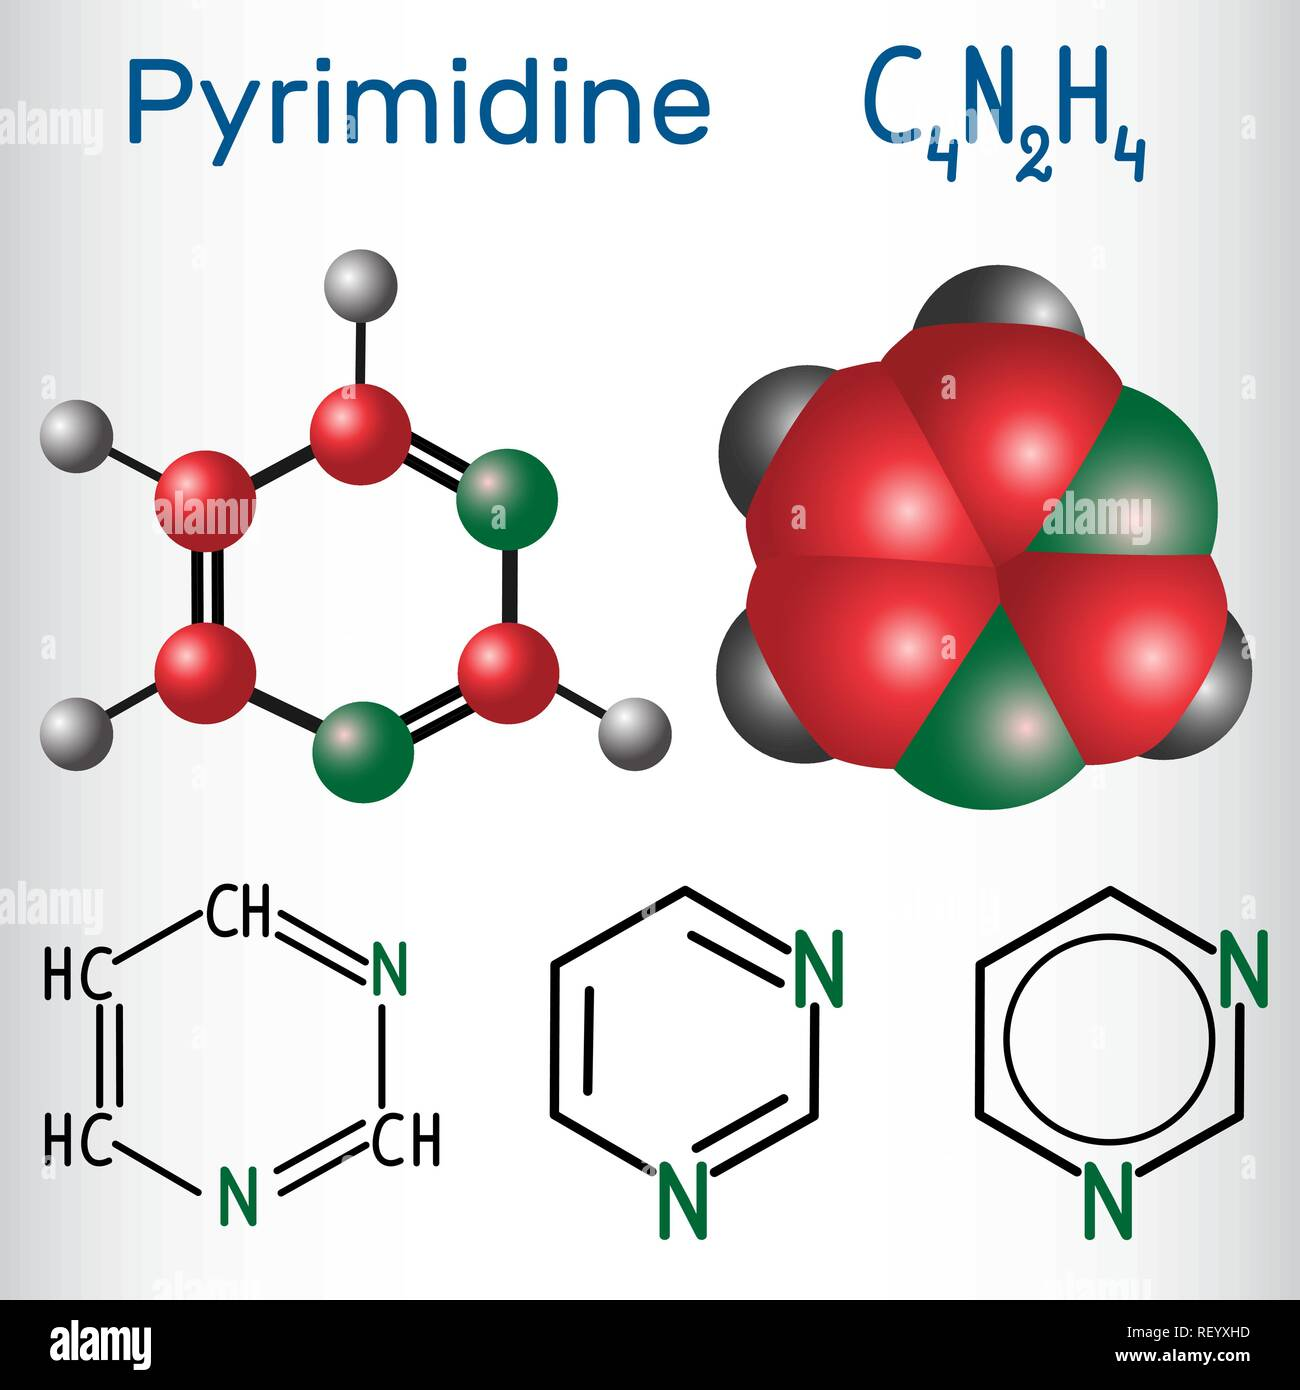 Pyrimidine molecule, is an aromatic heterocyclic organic compound. Structural chemical formula and molecule model. Vector illustration - Stock Image